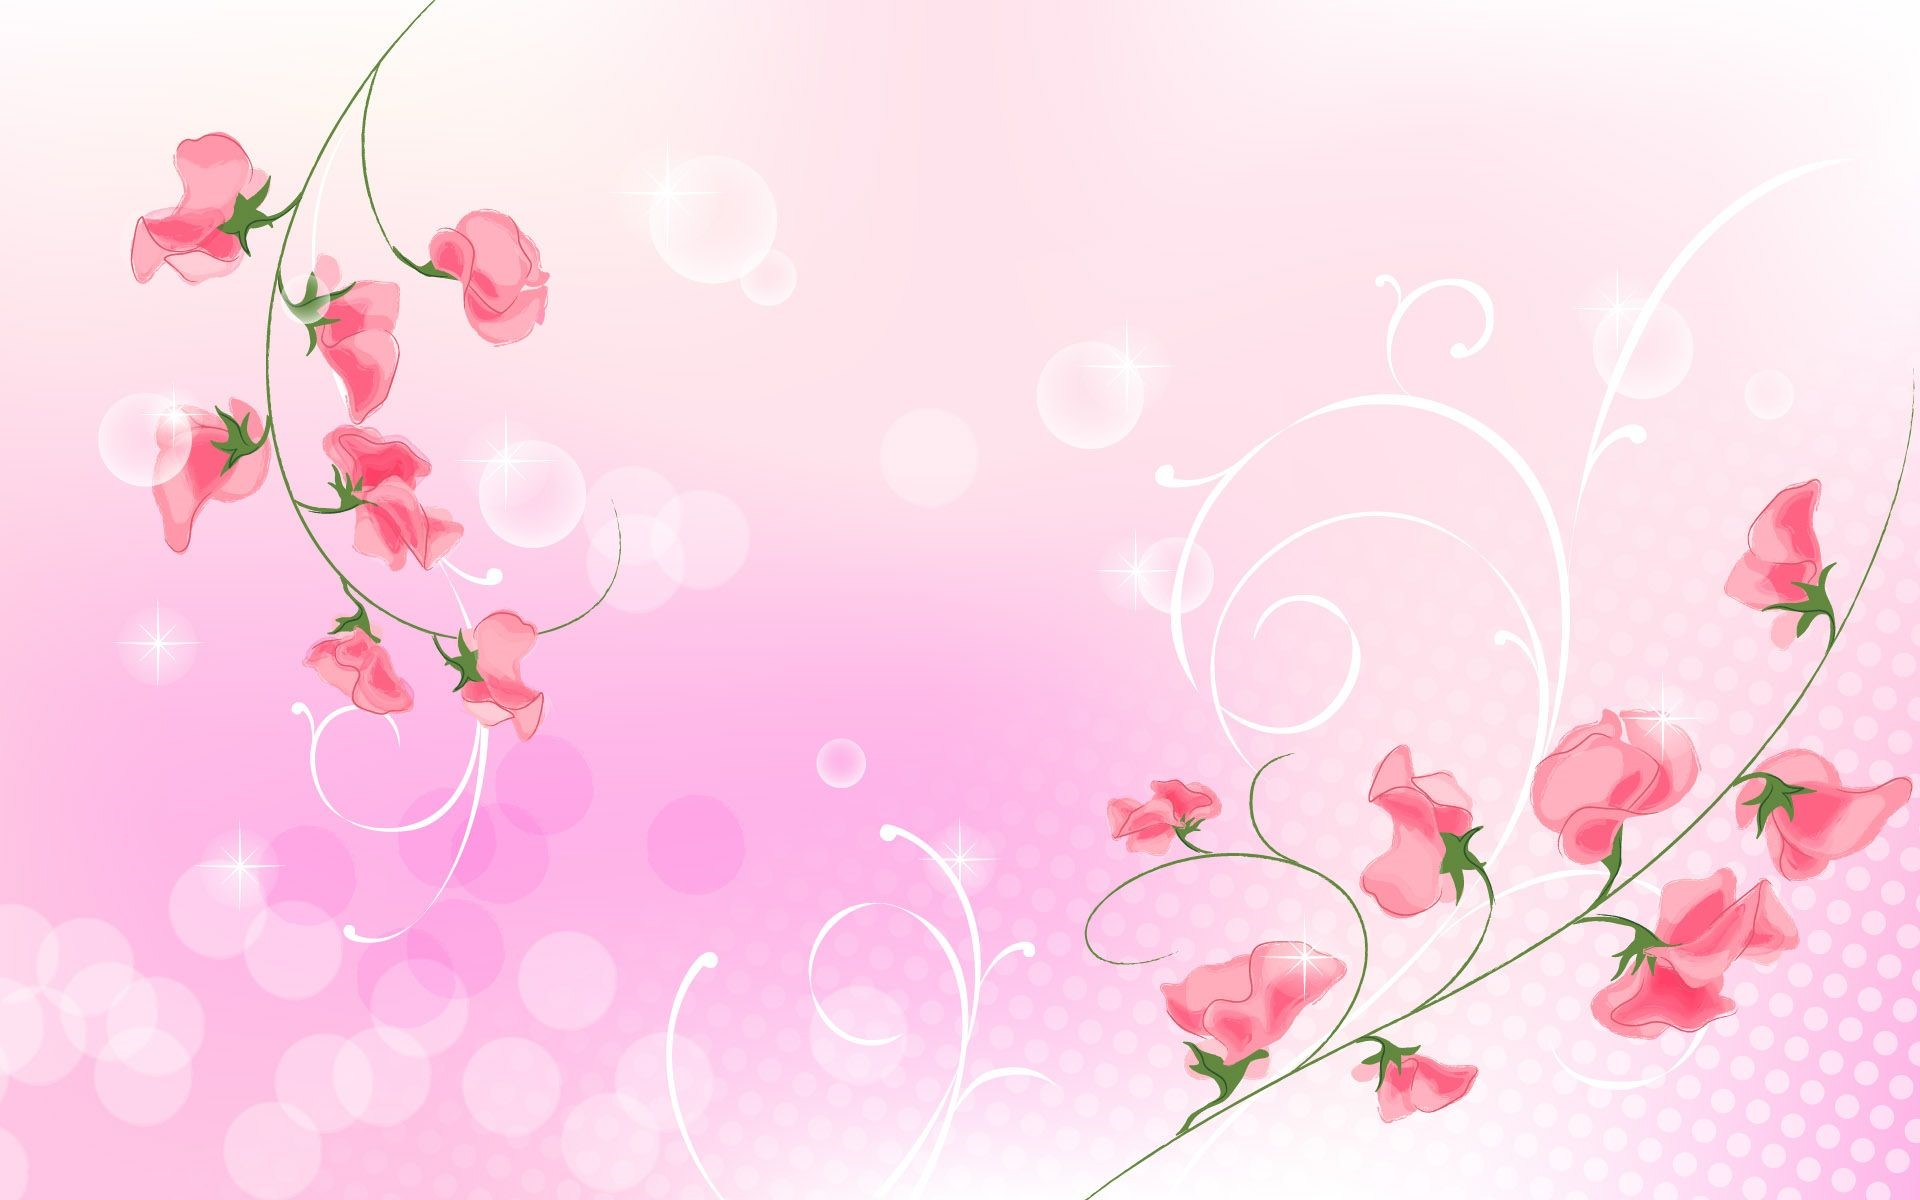 Abstract Floral Mobile Wallpapers